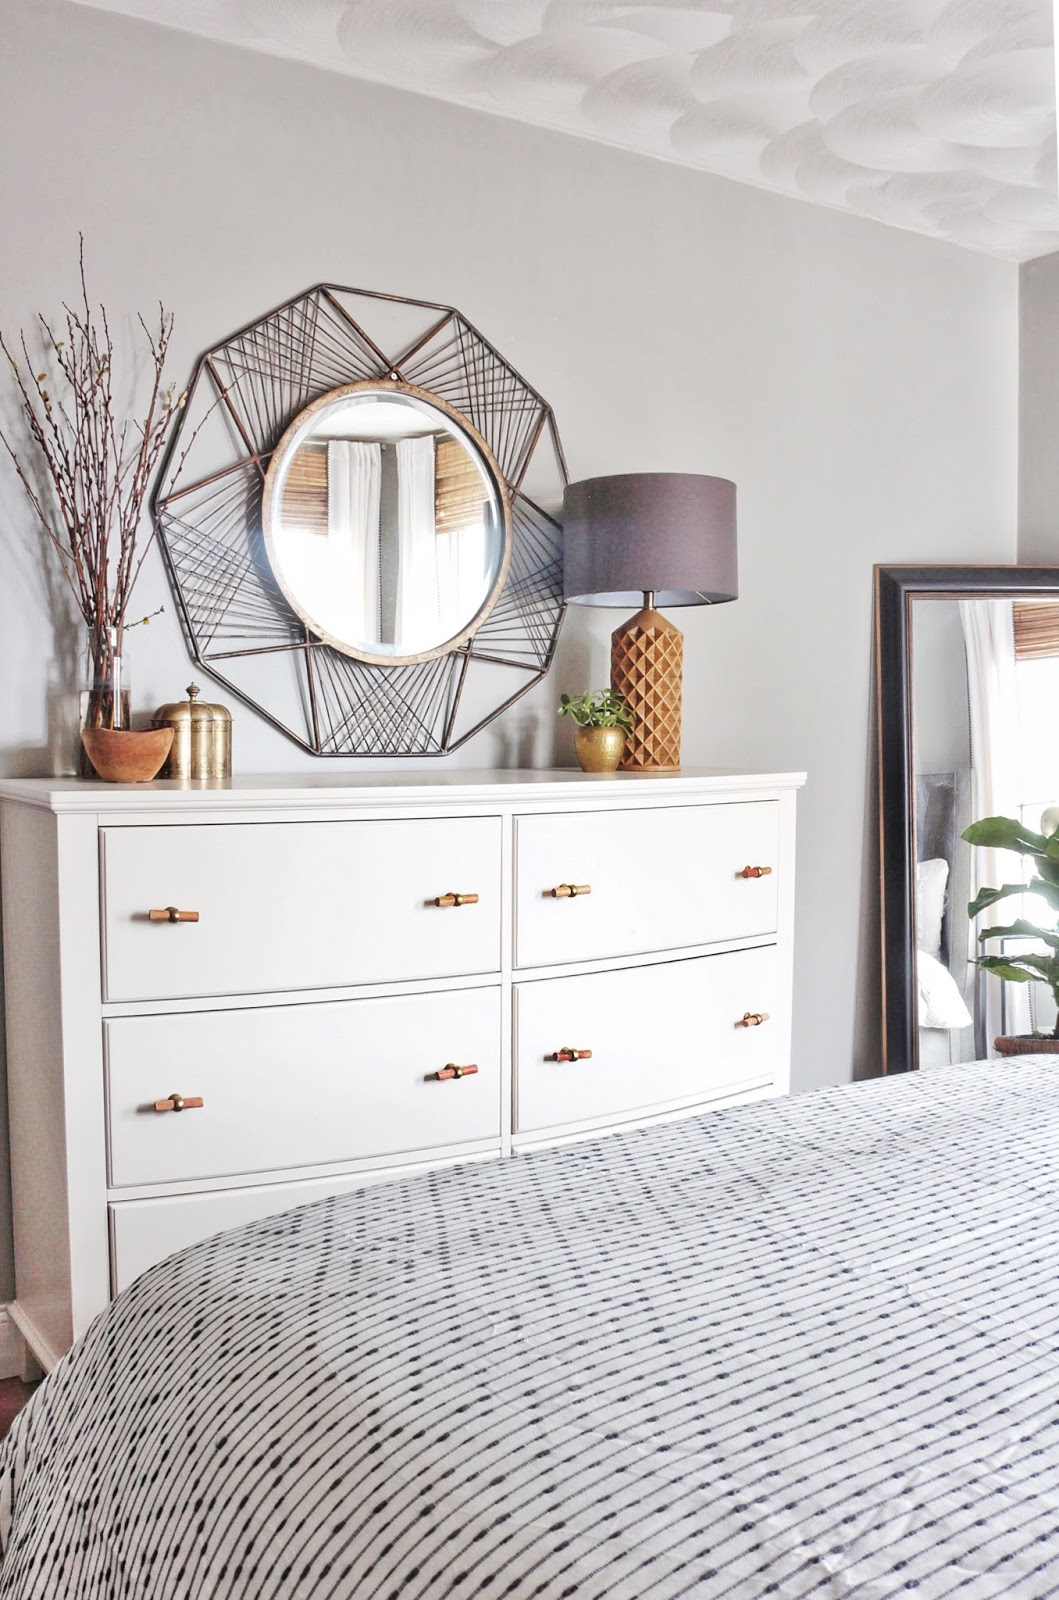 The Makings Of A Simple And Sophisticated Master Bedroom With Raymour Flanigan Made By Carli